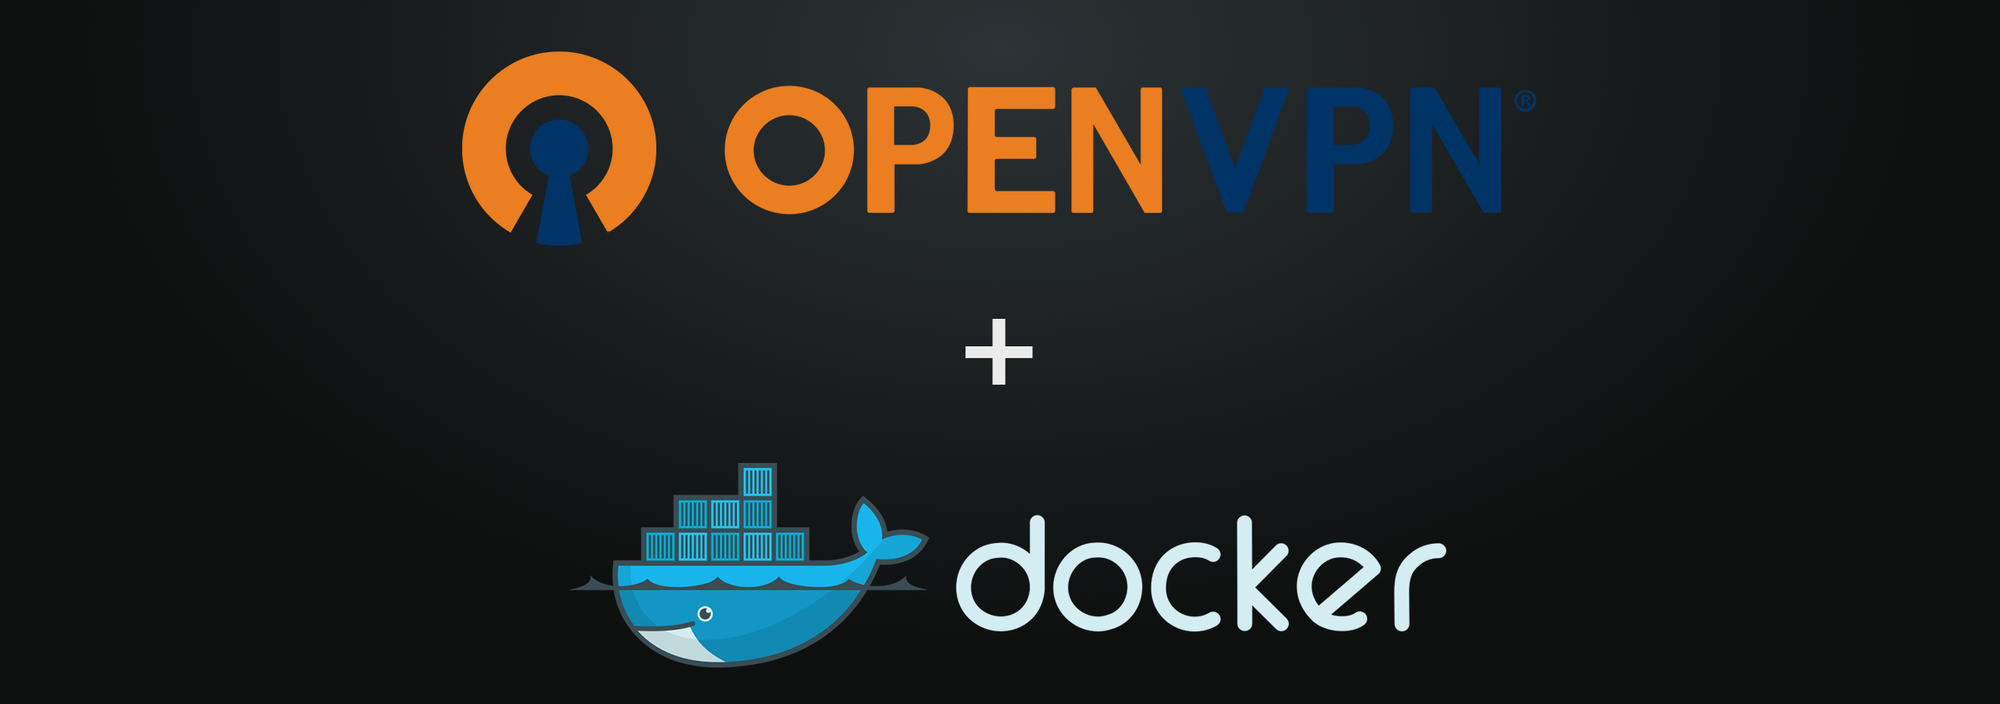 Routing Docker traffic through a VPN container